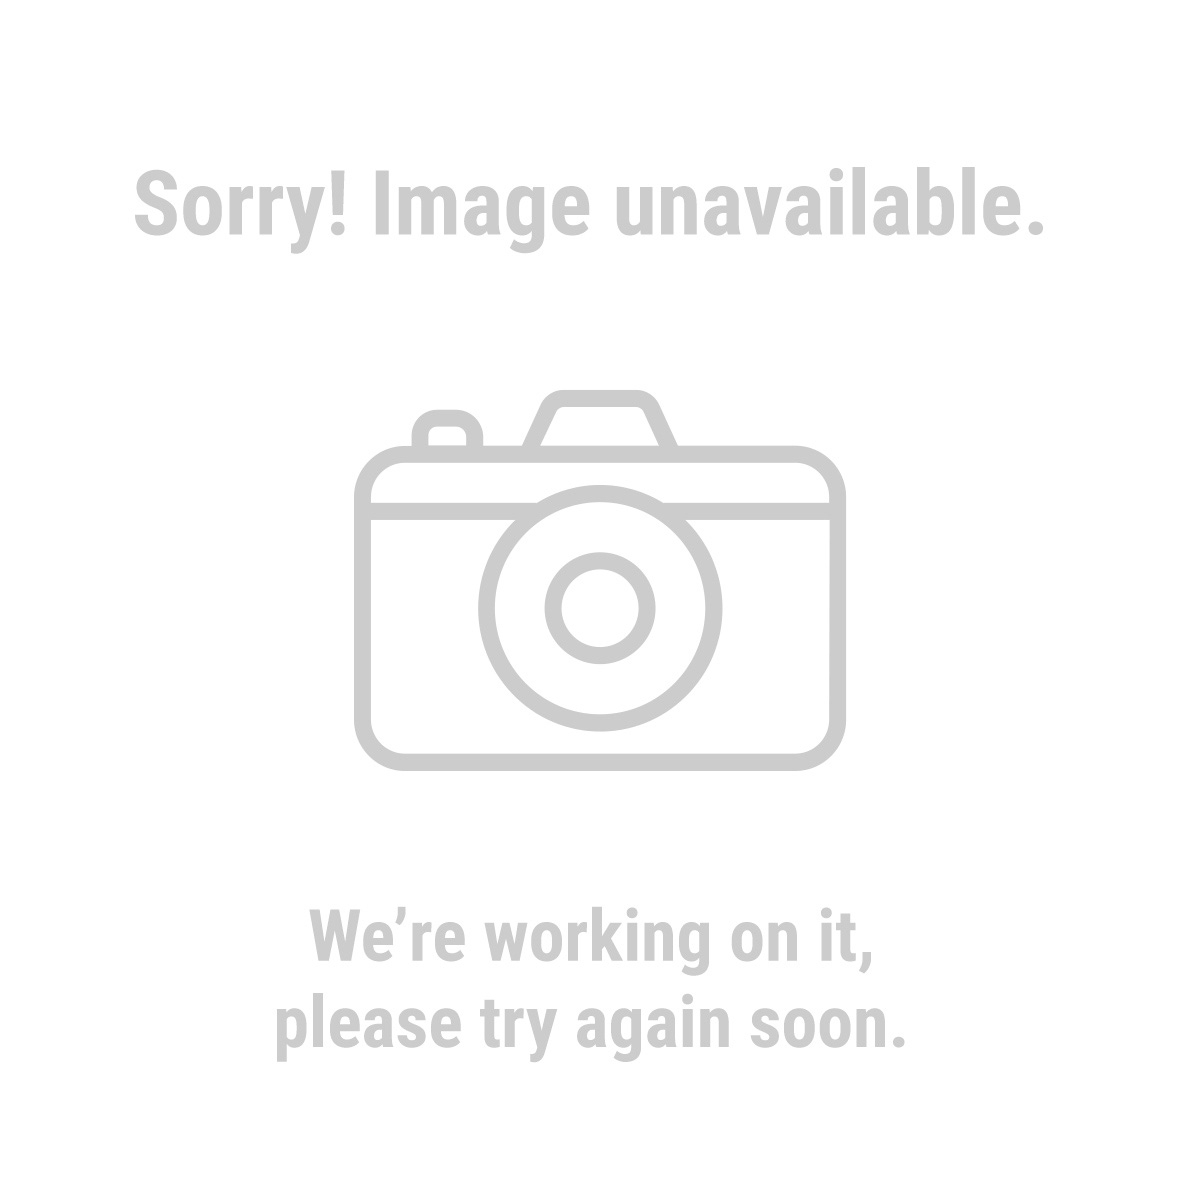 Western Safety Gloves 99581 Riding/Stable Work Gloves, Medium